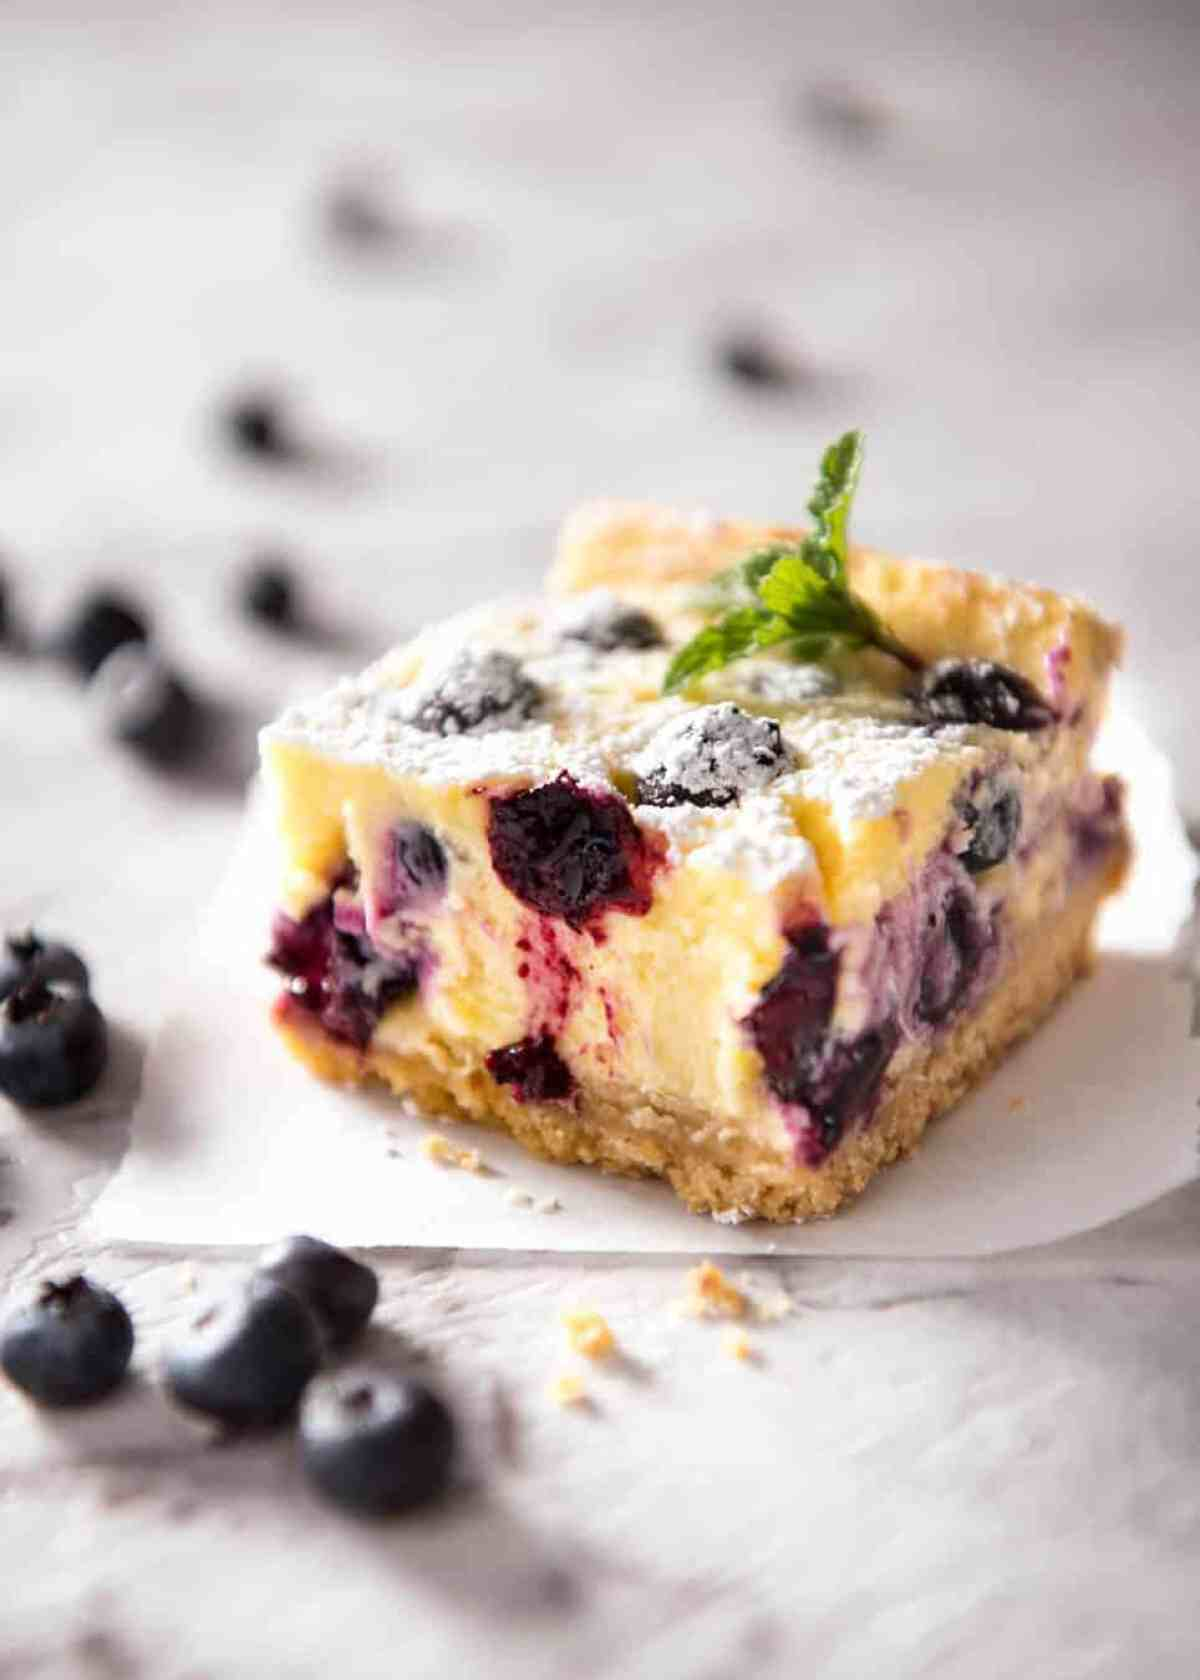 These Blueberry Cheesecake Bars are light yet creamy and luscious. Filled with soft blueberries, this is a baked cheesecake that's so easy to make! www.recipetineats.com